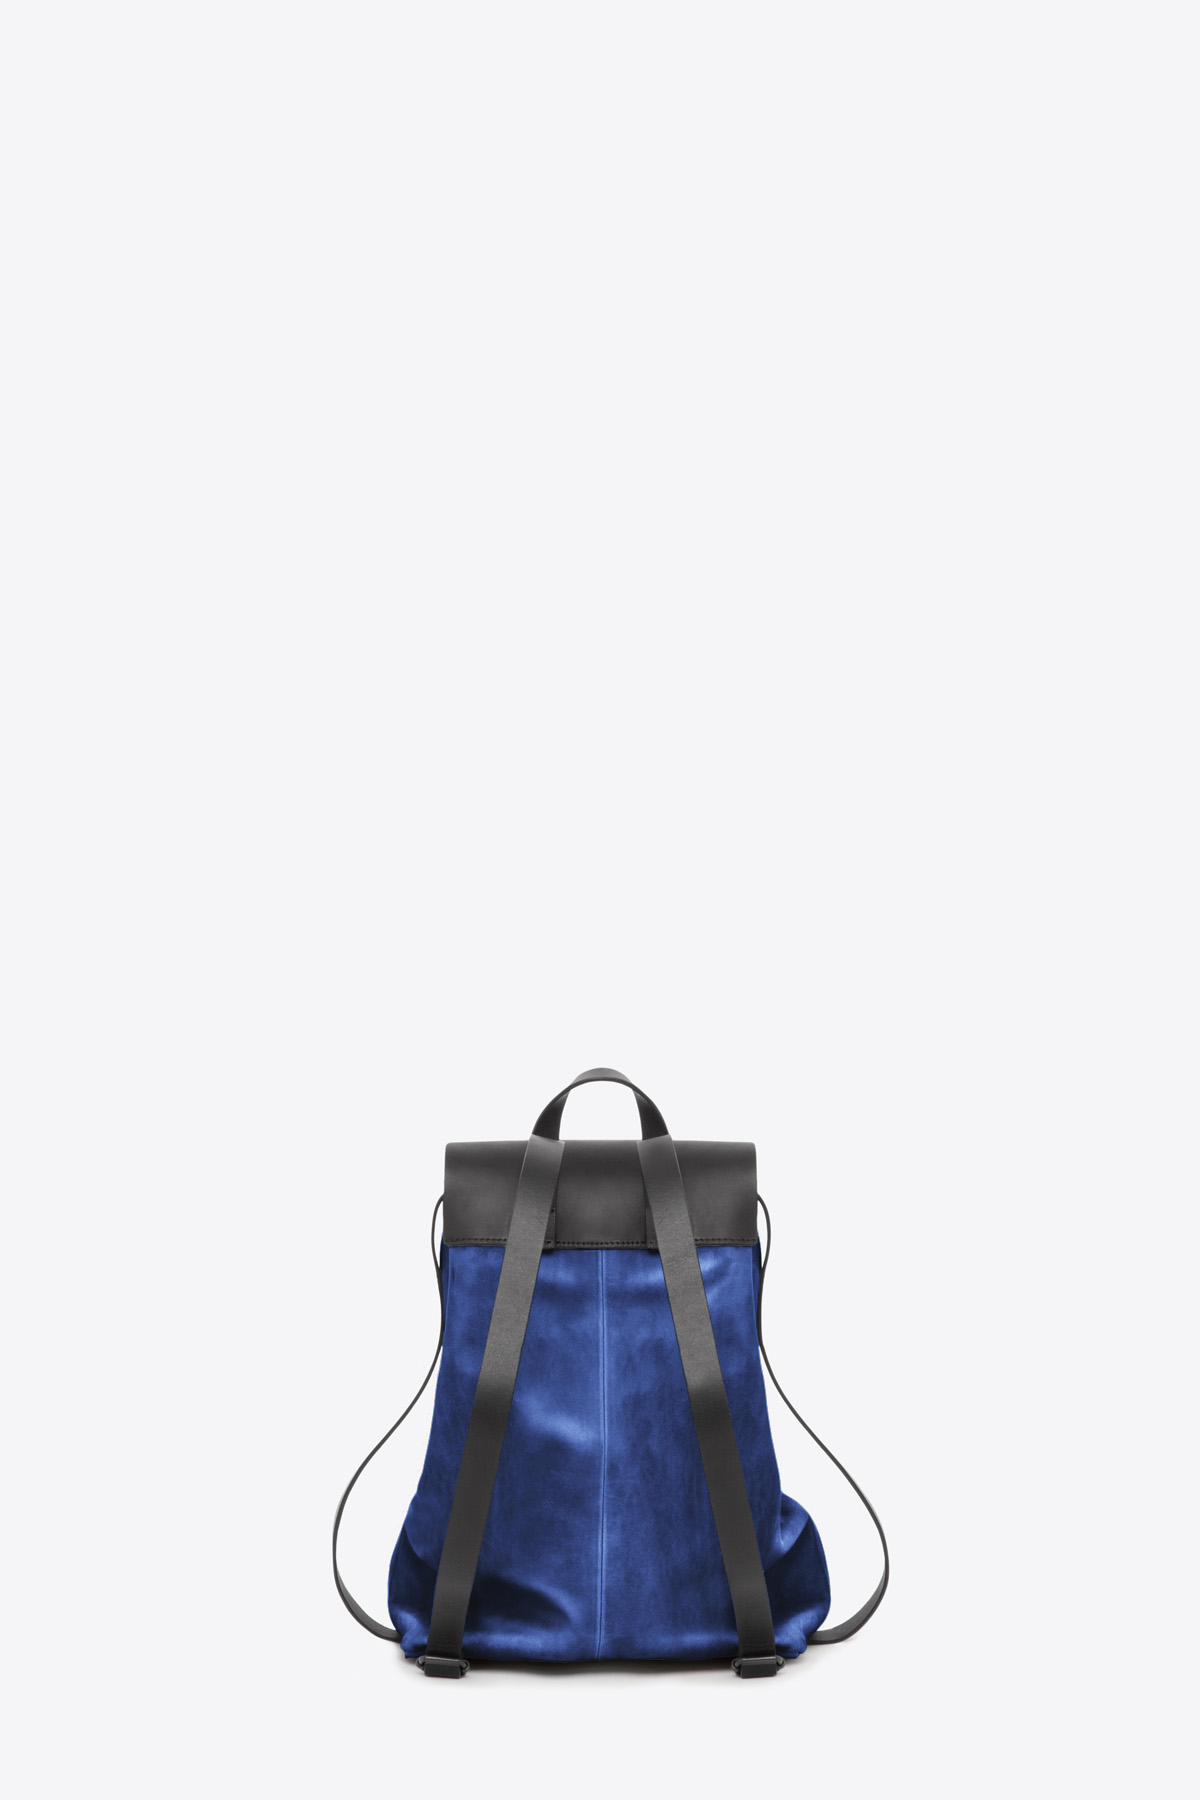 dclr009-b-backpack-a20-royalblue-back